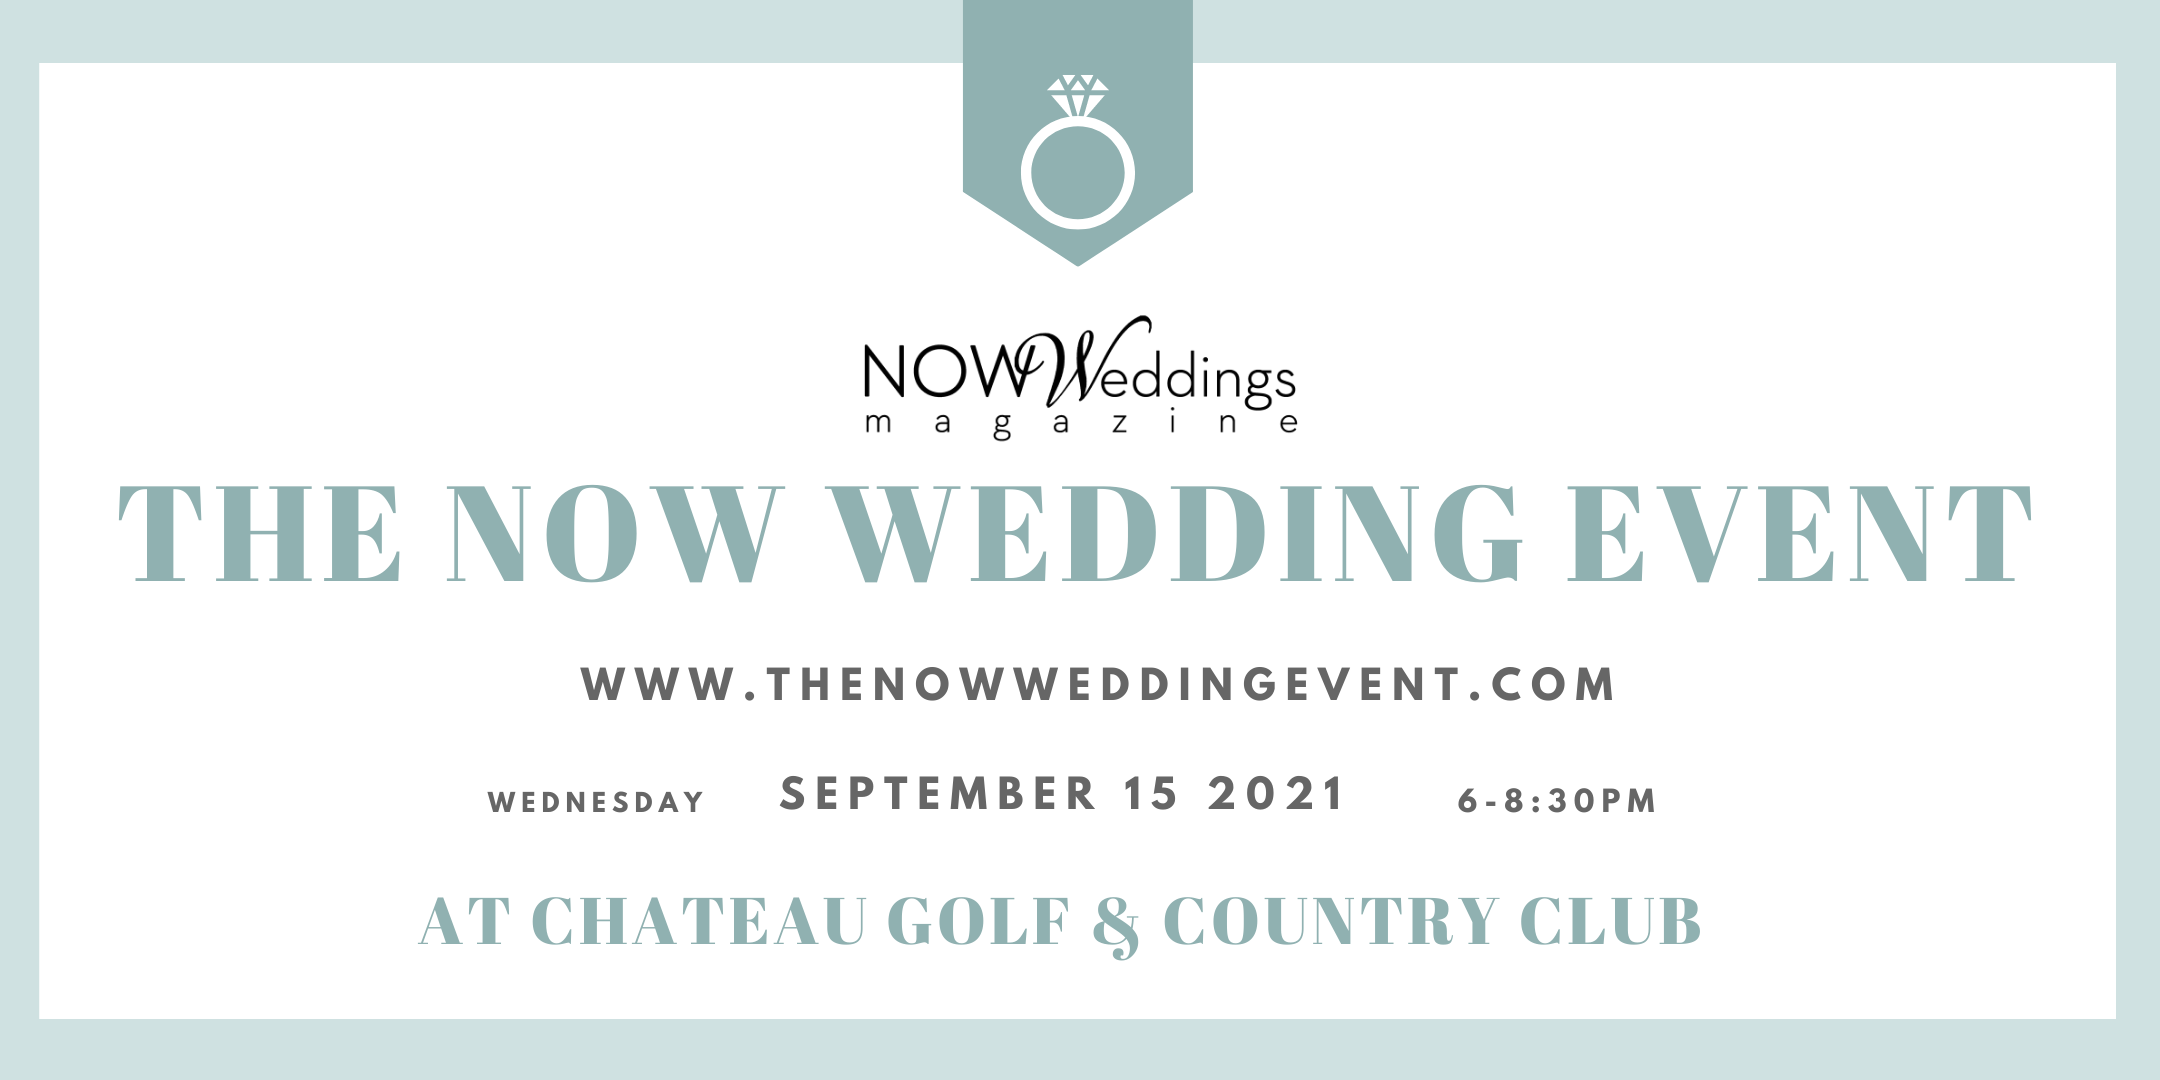 The NOW Wedding Event 2021